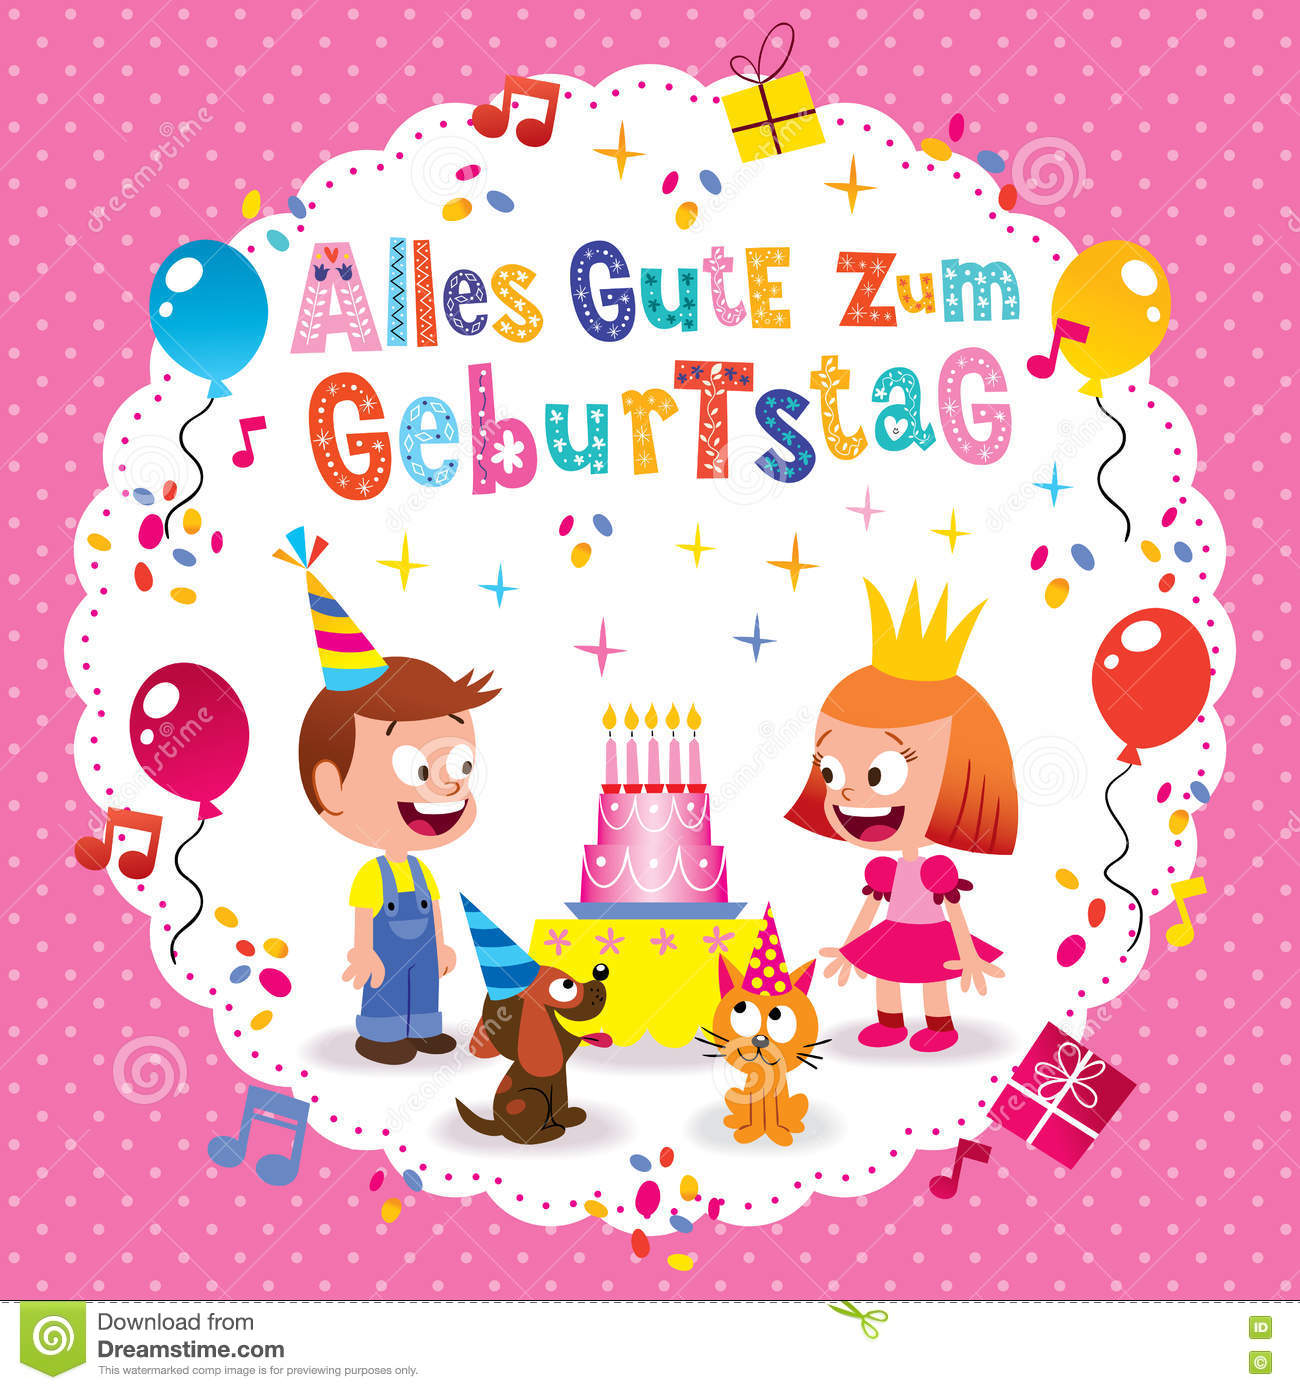 Alles Gute Zum Geburtstag Deutsch German Happy Birthday Greeting Card With Little Boy And Girl Puppy Kitten